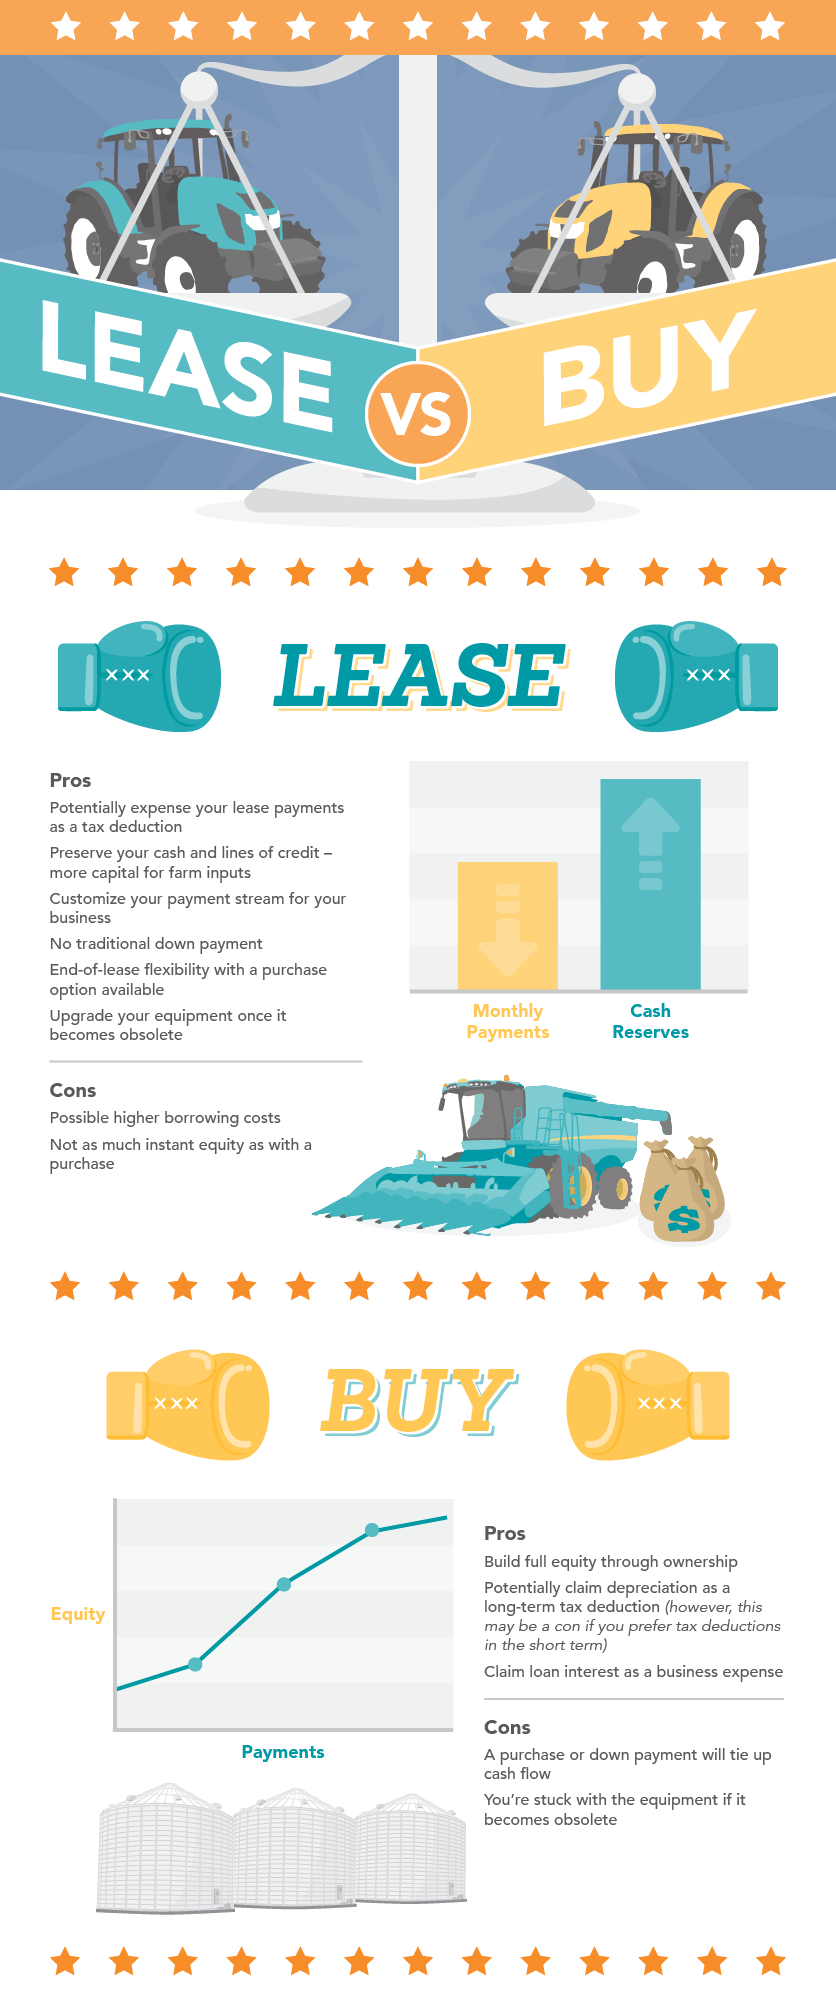 CWB National Leasing's lease vs. buy infographic that outlines the pros and cons of each acquisition choice